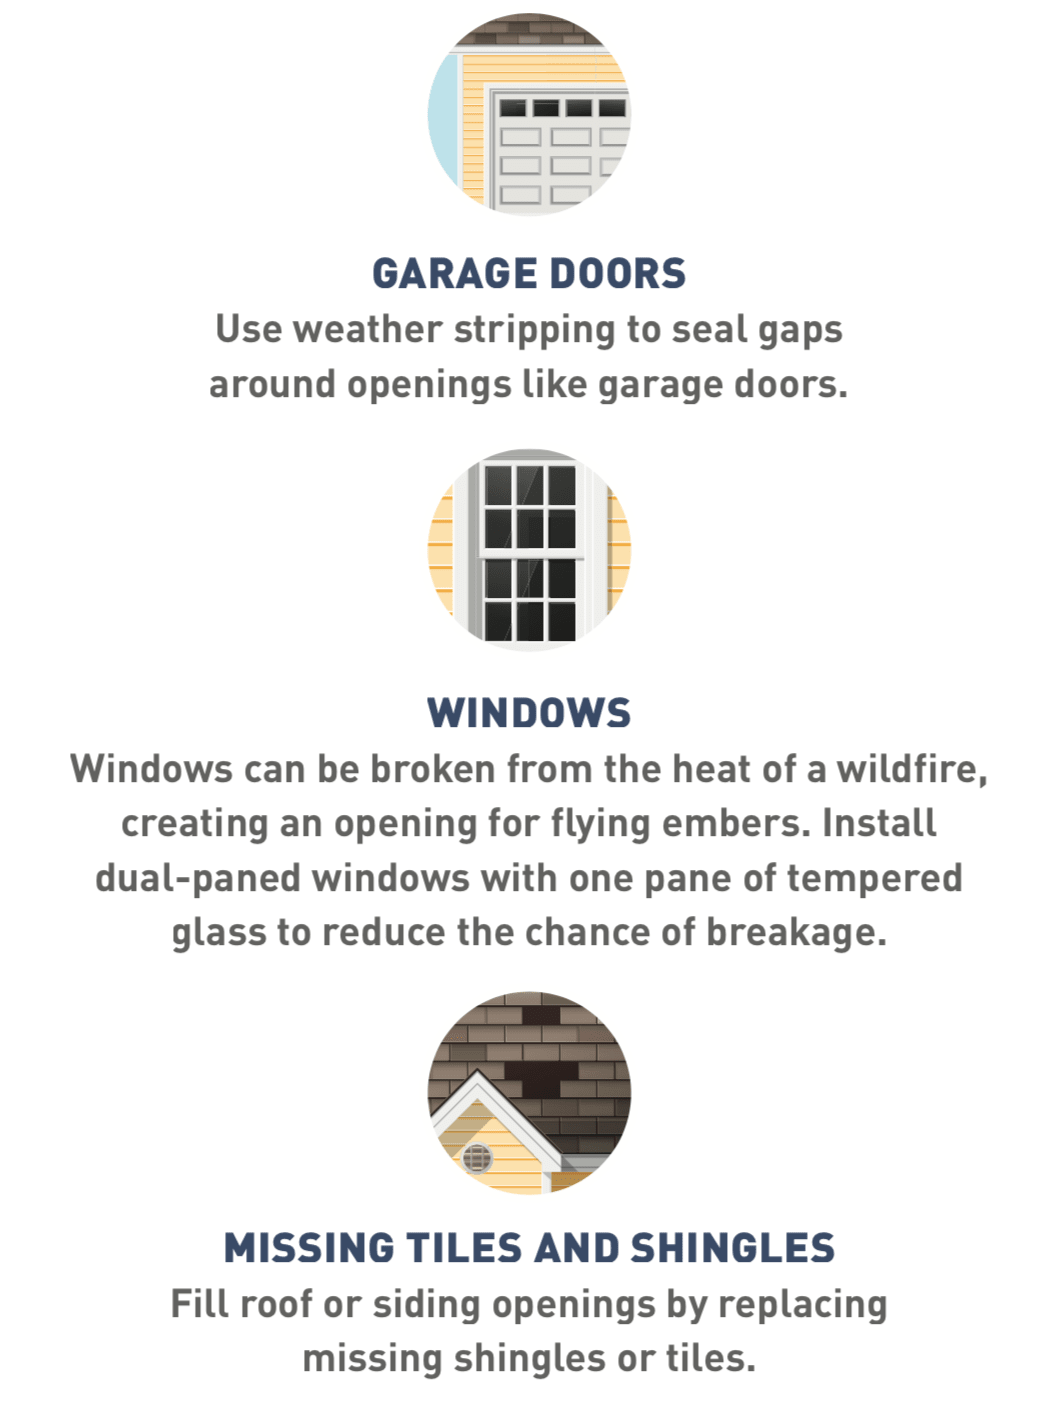 Illustrated icon of a garage door, icon of a window, and icon of missing roof tiles and shingles.